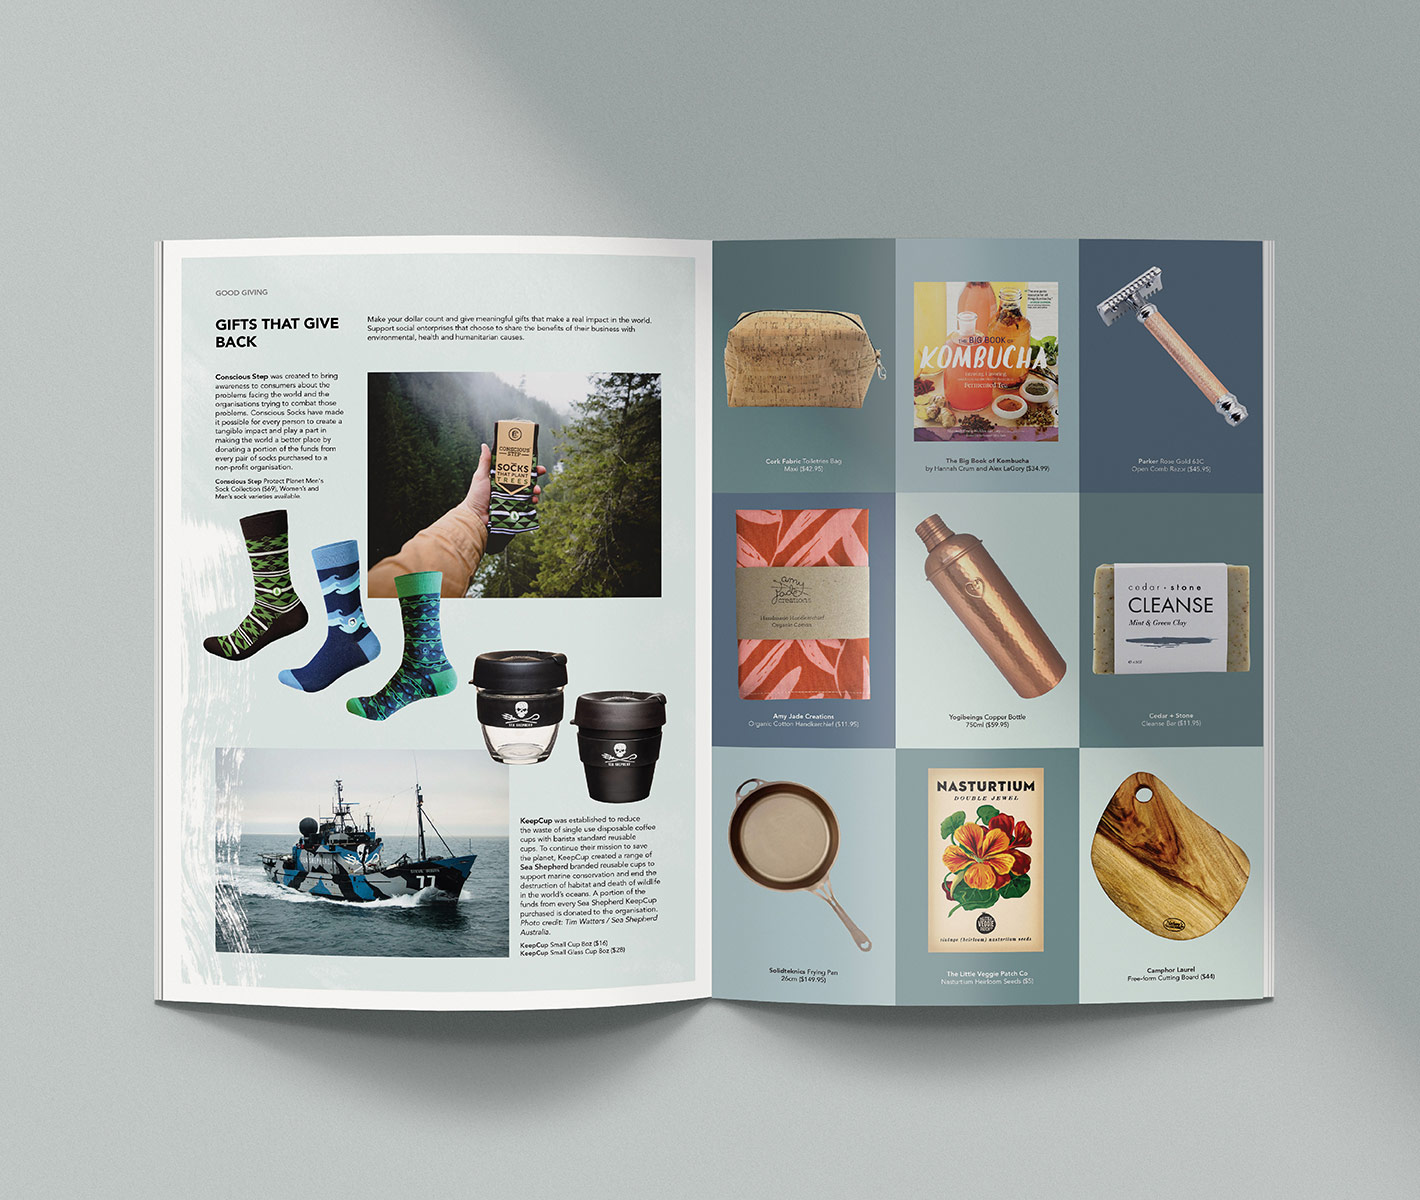 ethical retailer magazine editorial layout design